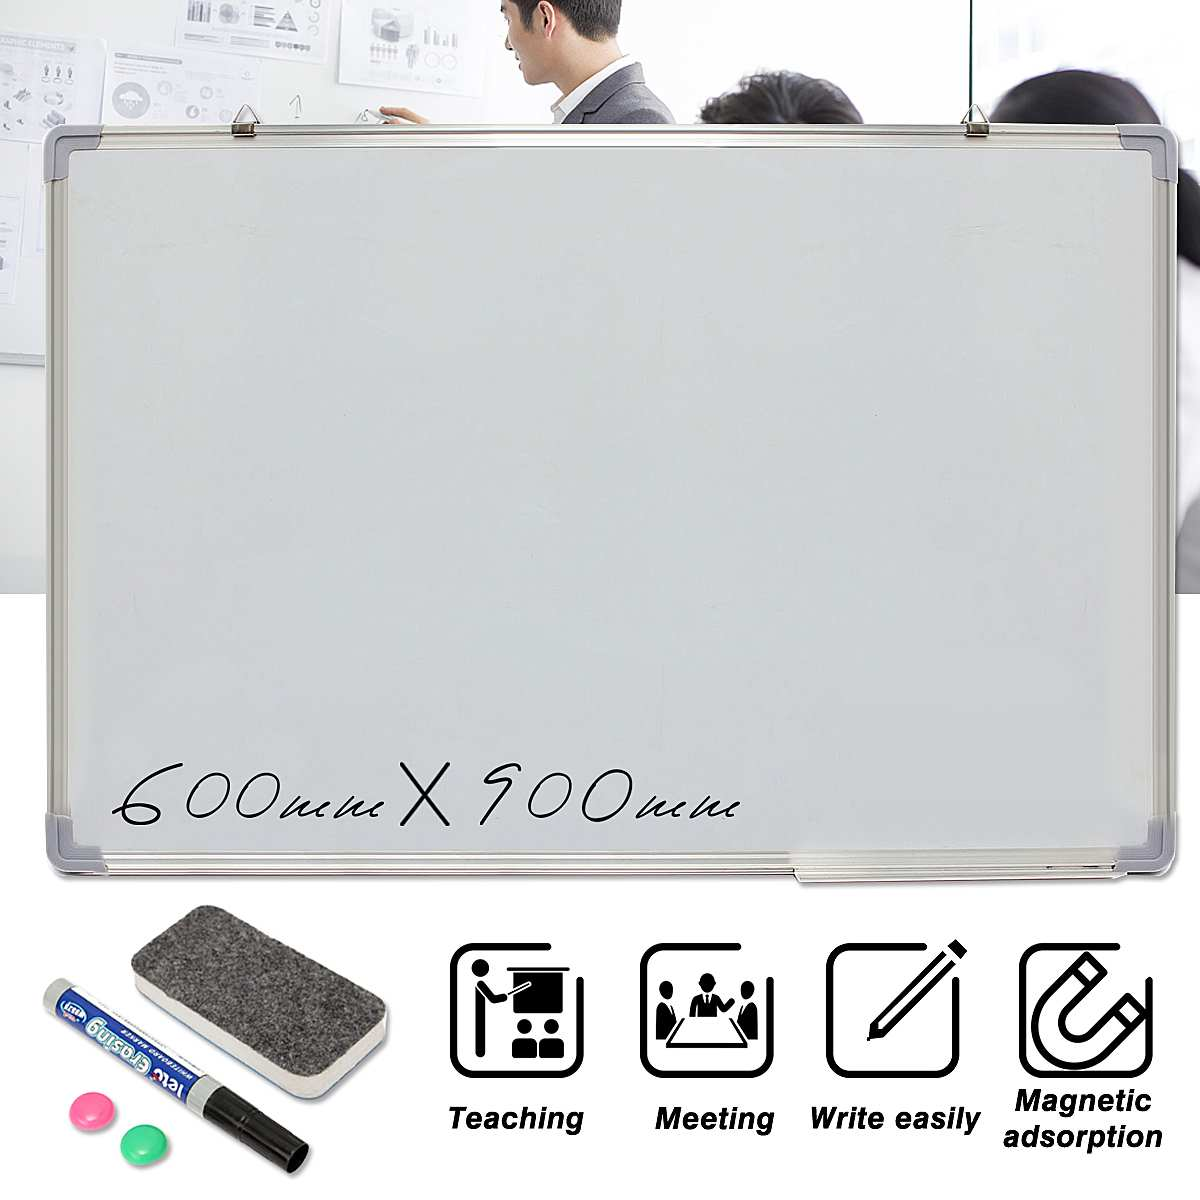 NEW 600x900MM Magnetic Whiteboard Writing Board Double Side With Pen Erase Magnets Buttons For Office School